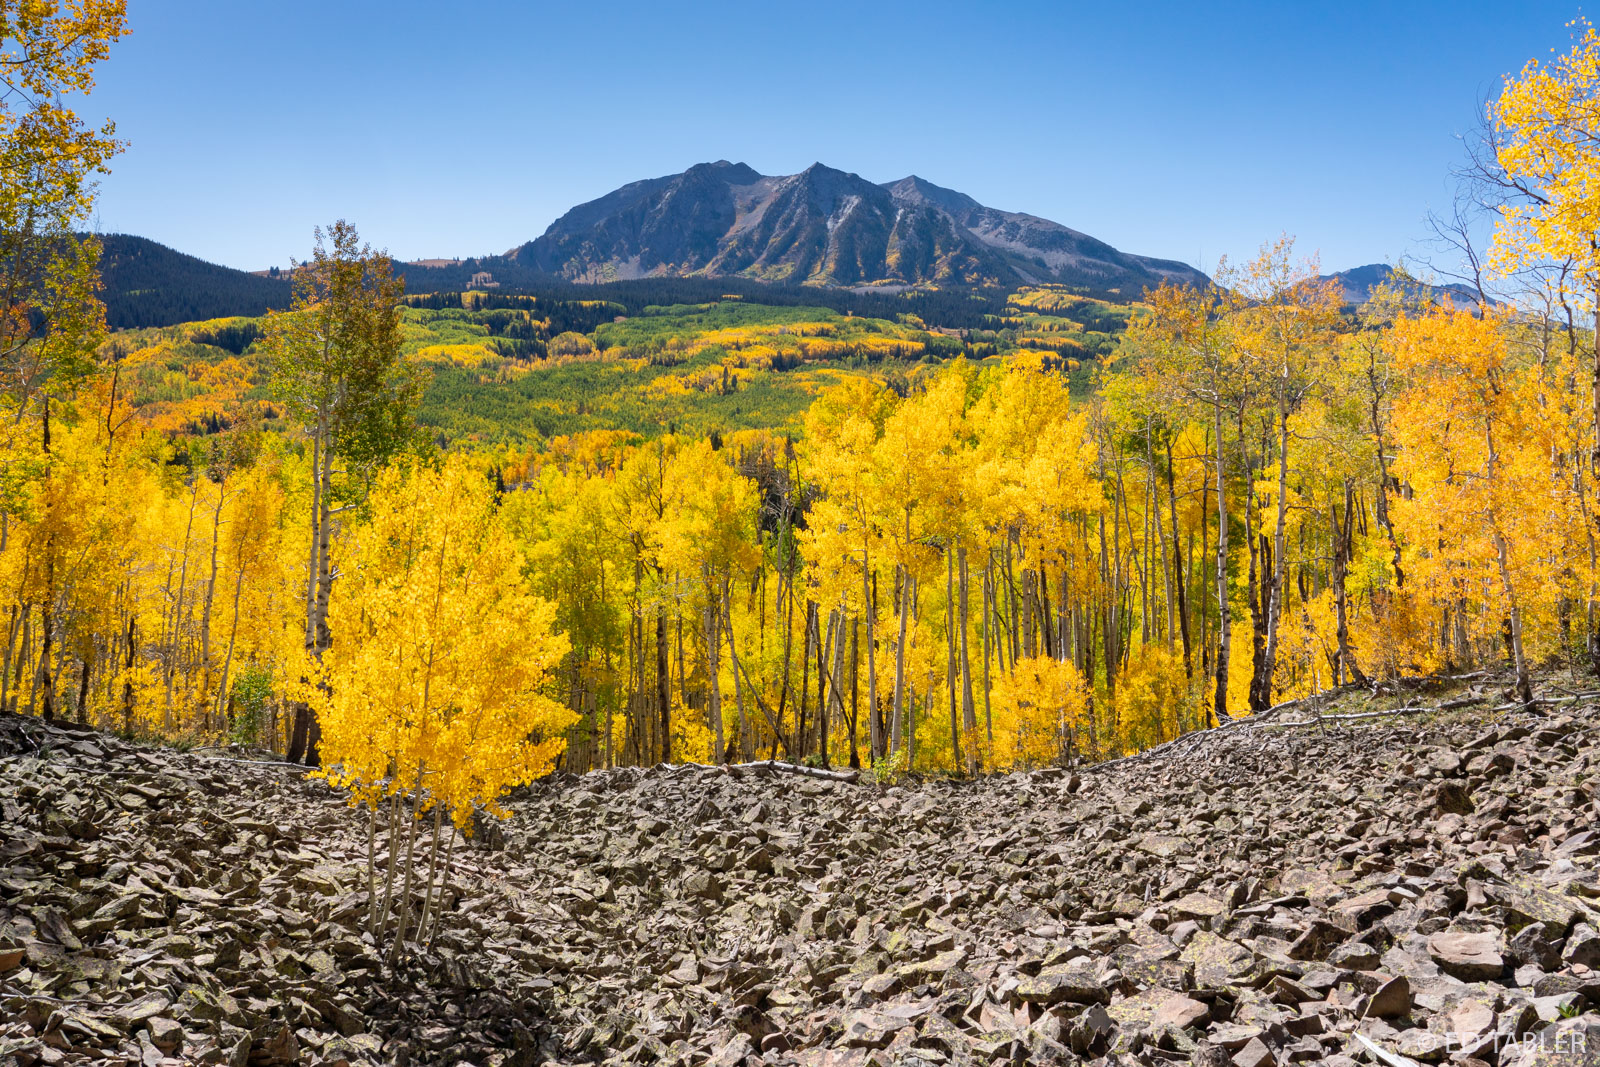 East Beckwith Mountain as viewed from Dark Canyon Trail near Kebler Pass, Colorado.